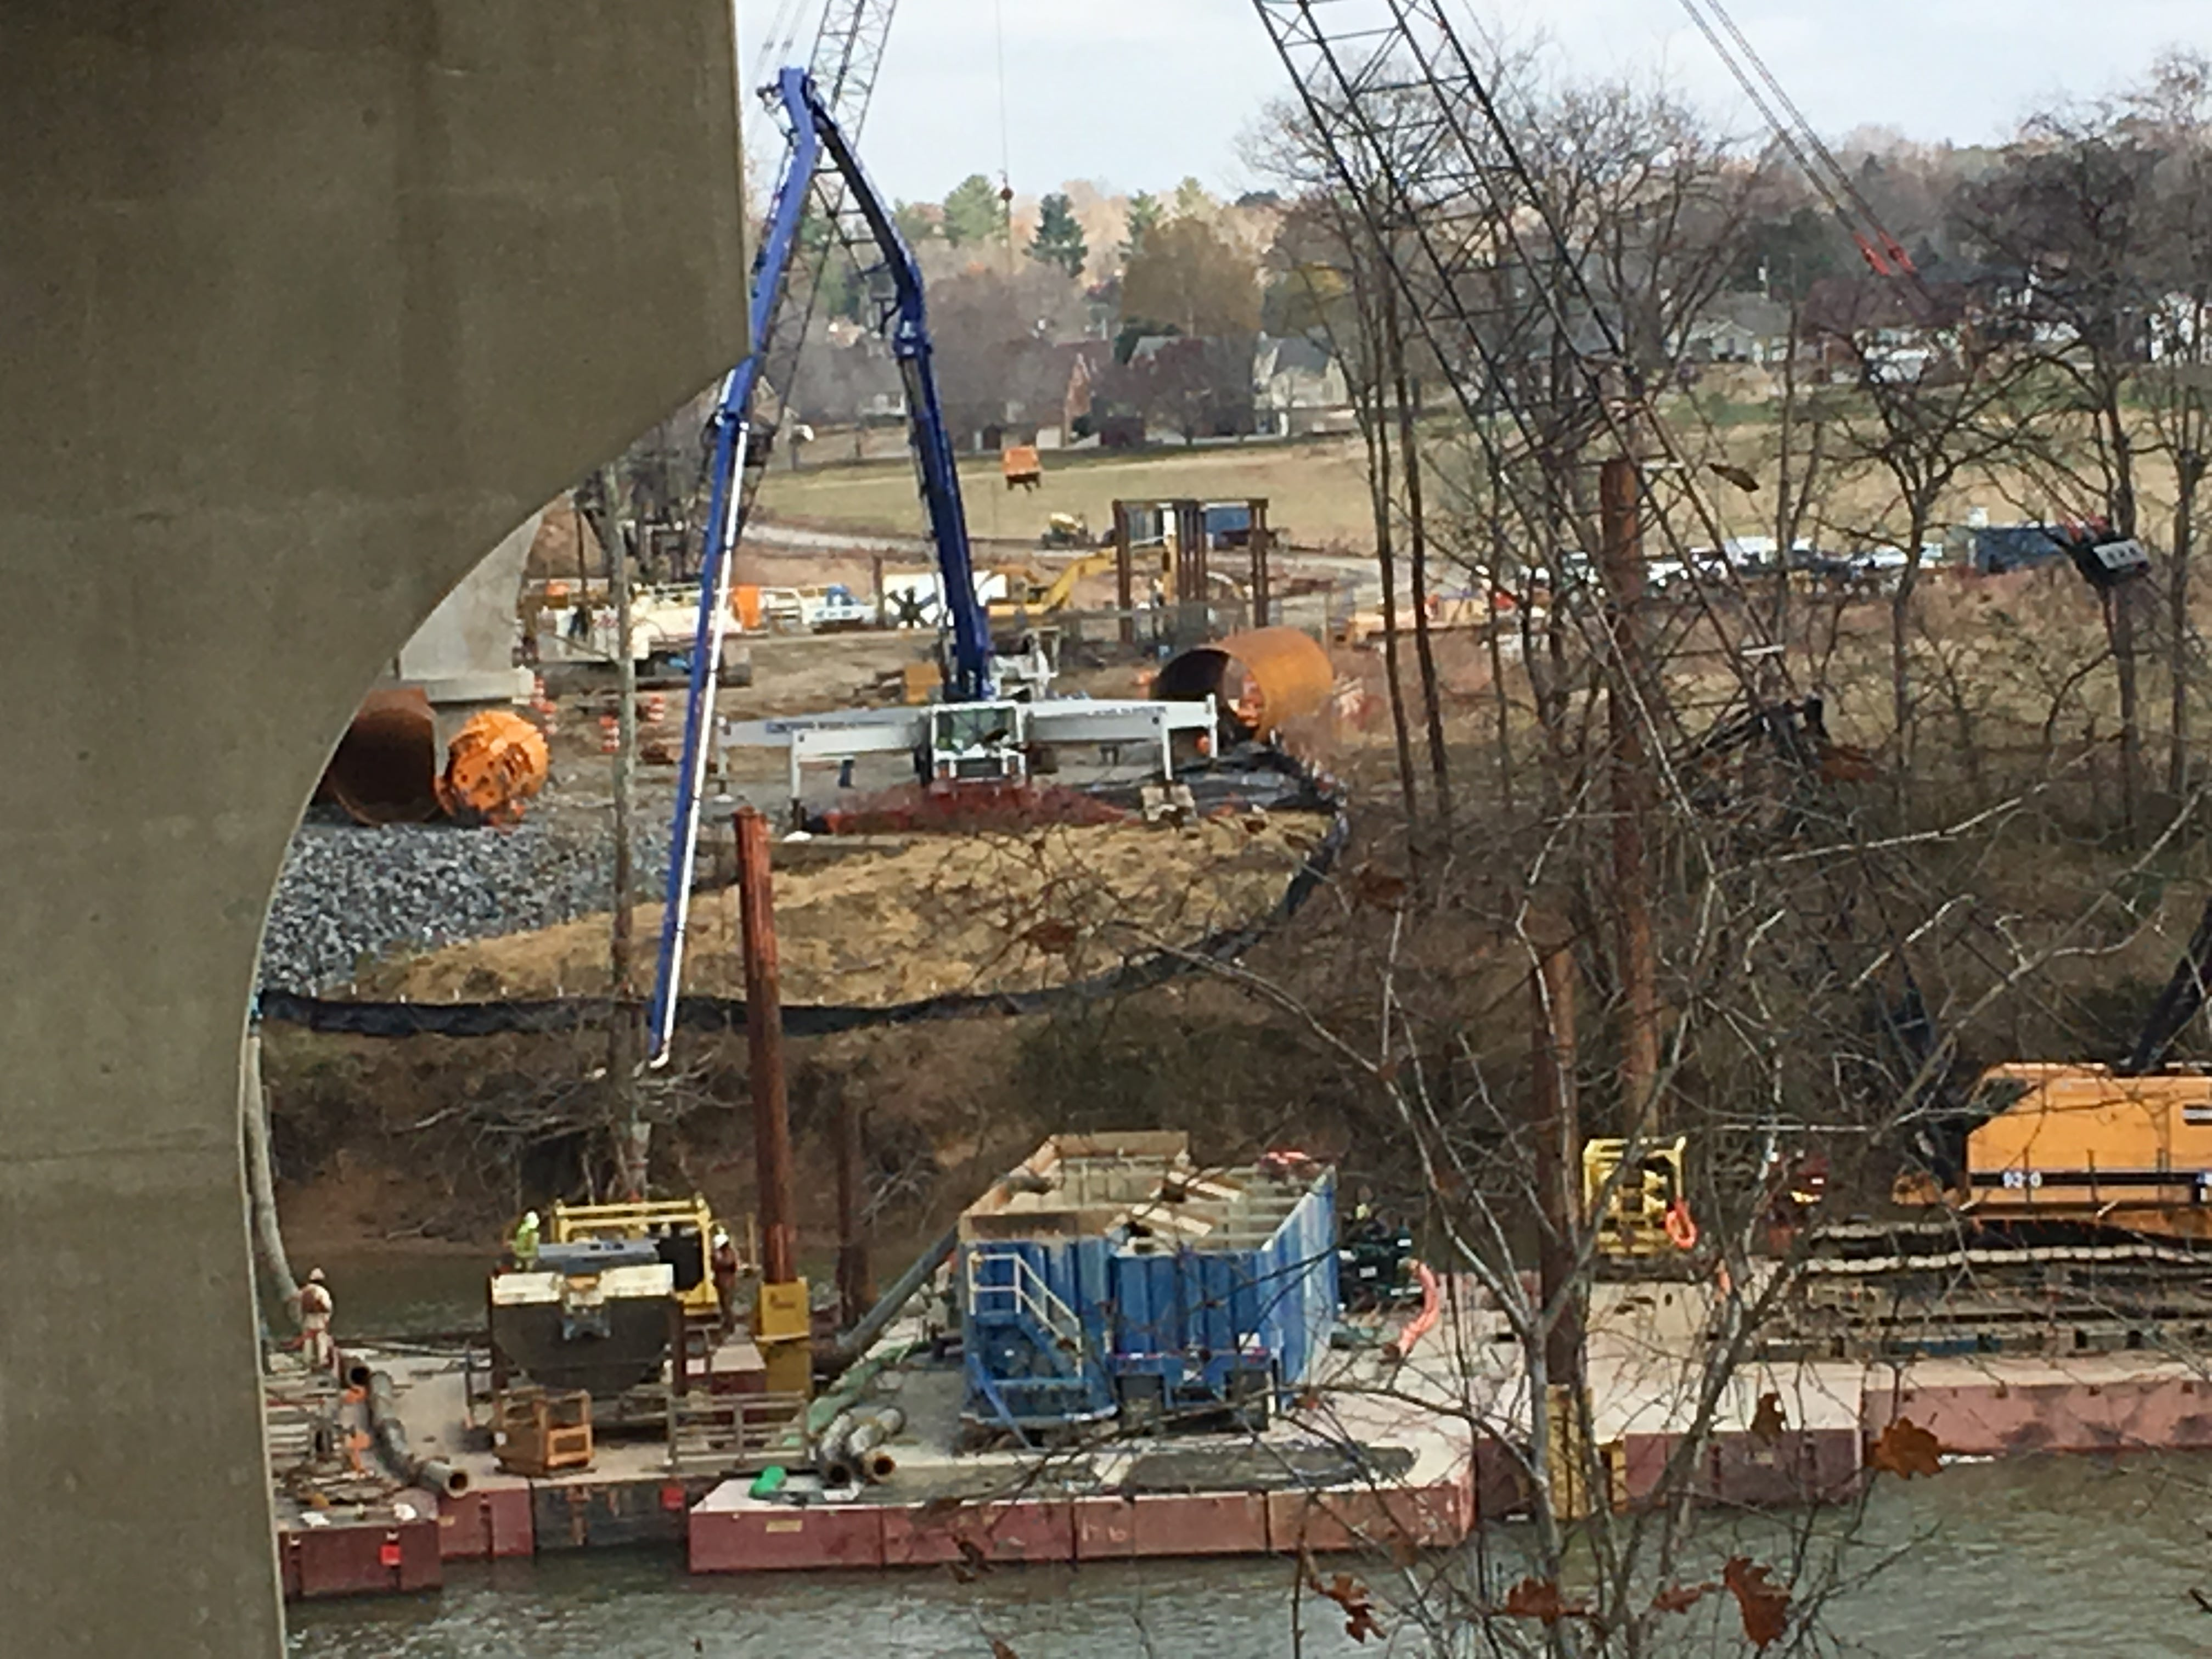 Concrete is being pumped into a drilled shaft that will support a pier beneath a new span of McClure Bridge.